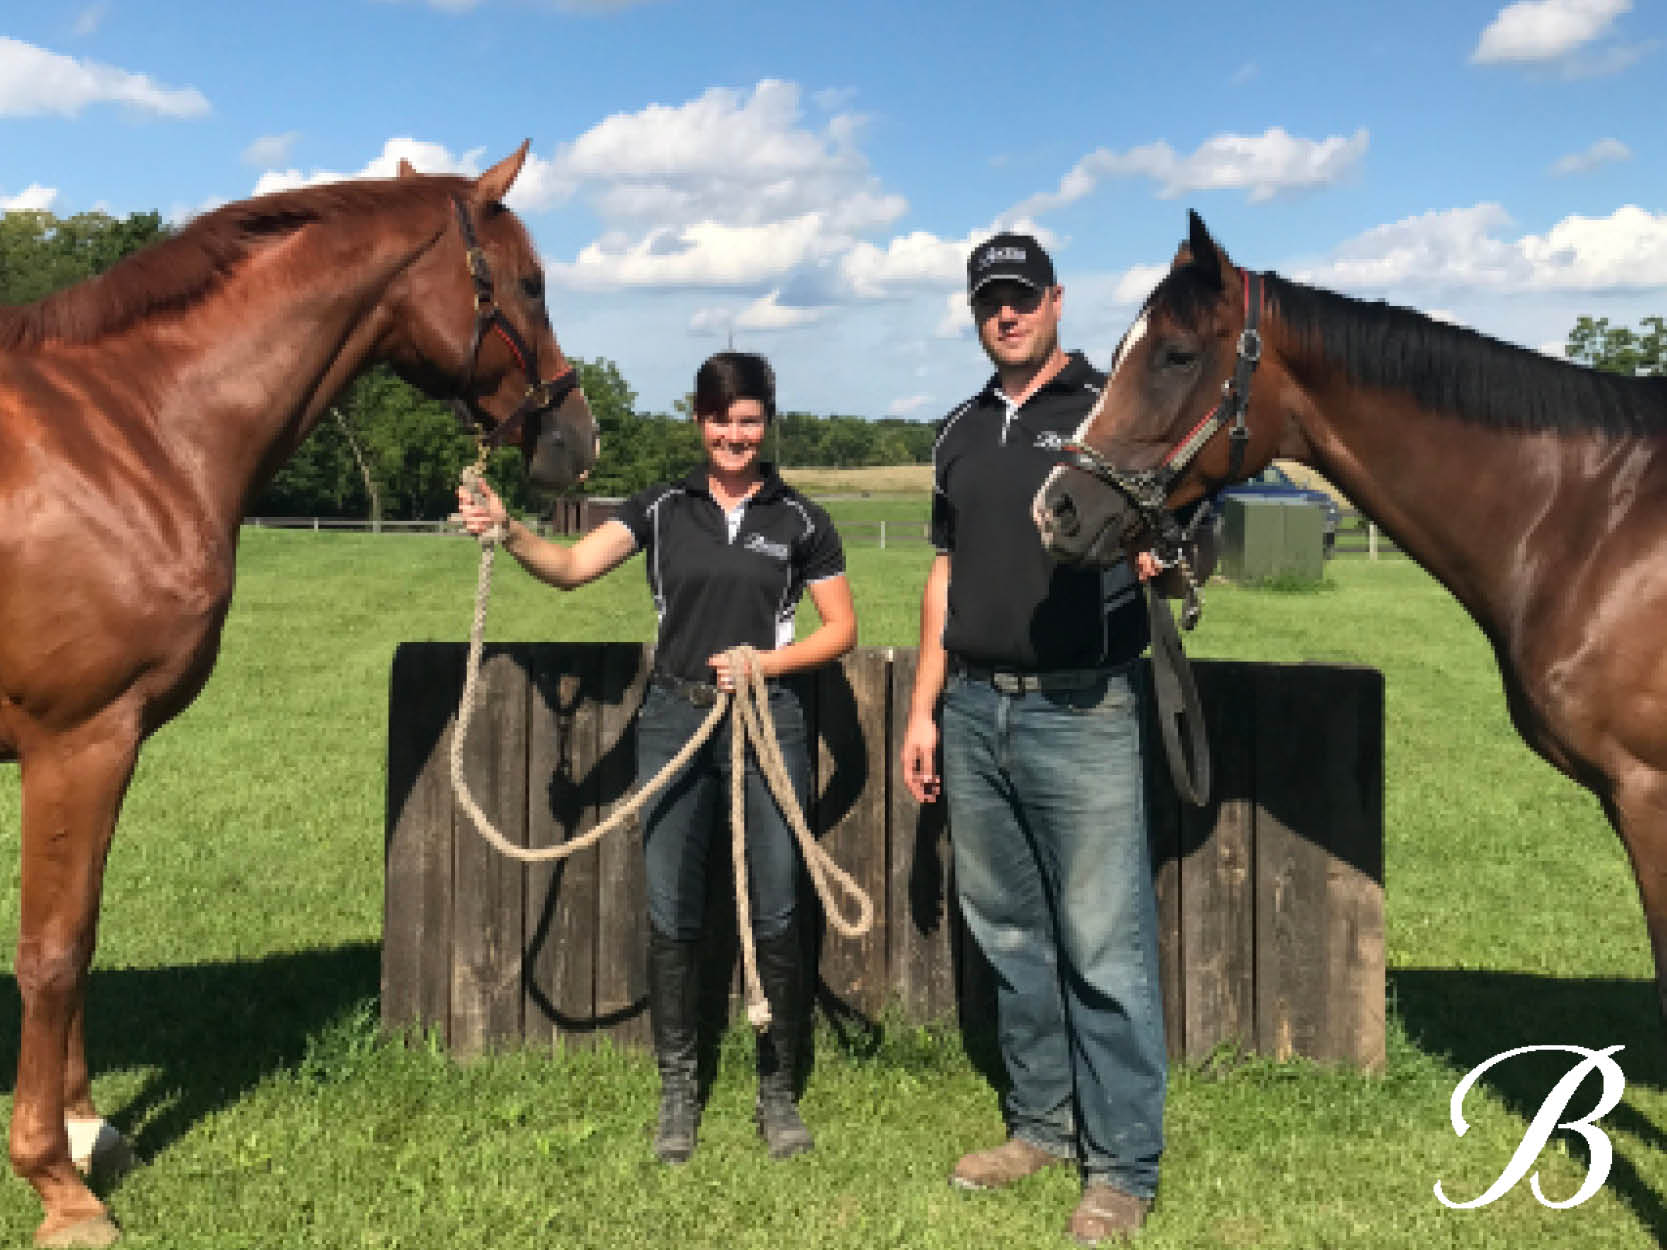 Behind the scenes at Elevation Dressage and Eventing (part 1)